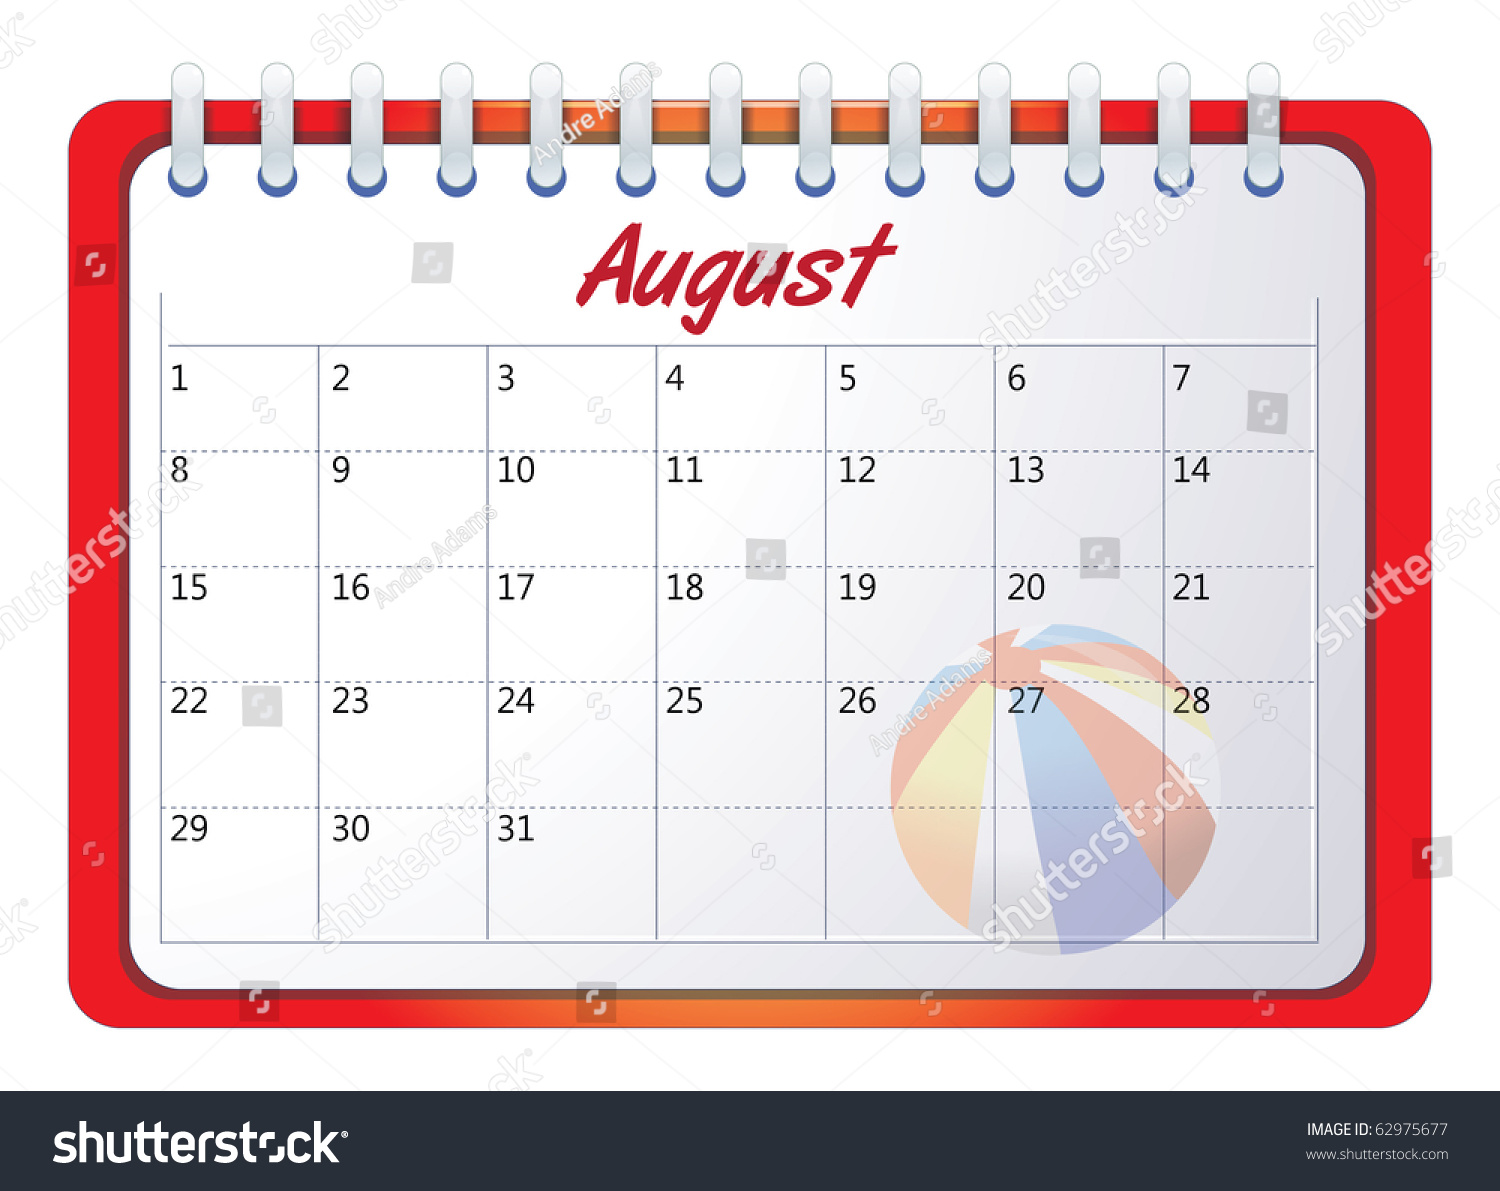 Cartoon Vector Illustration Of An August Calendar